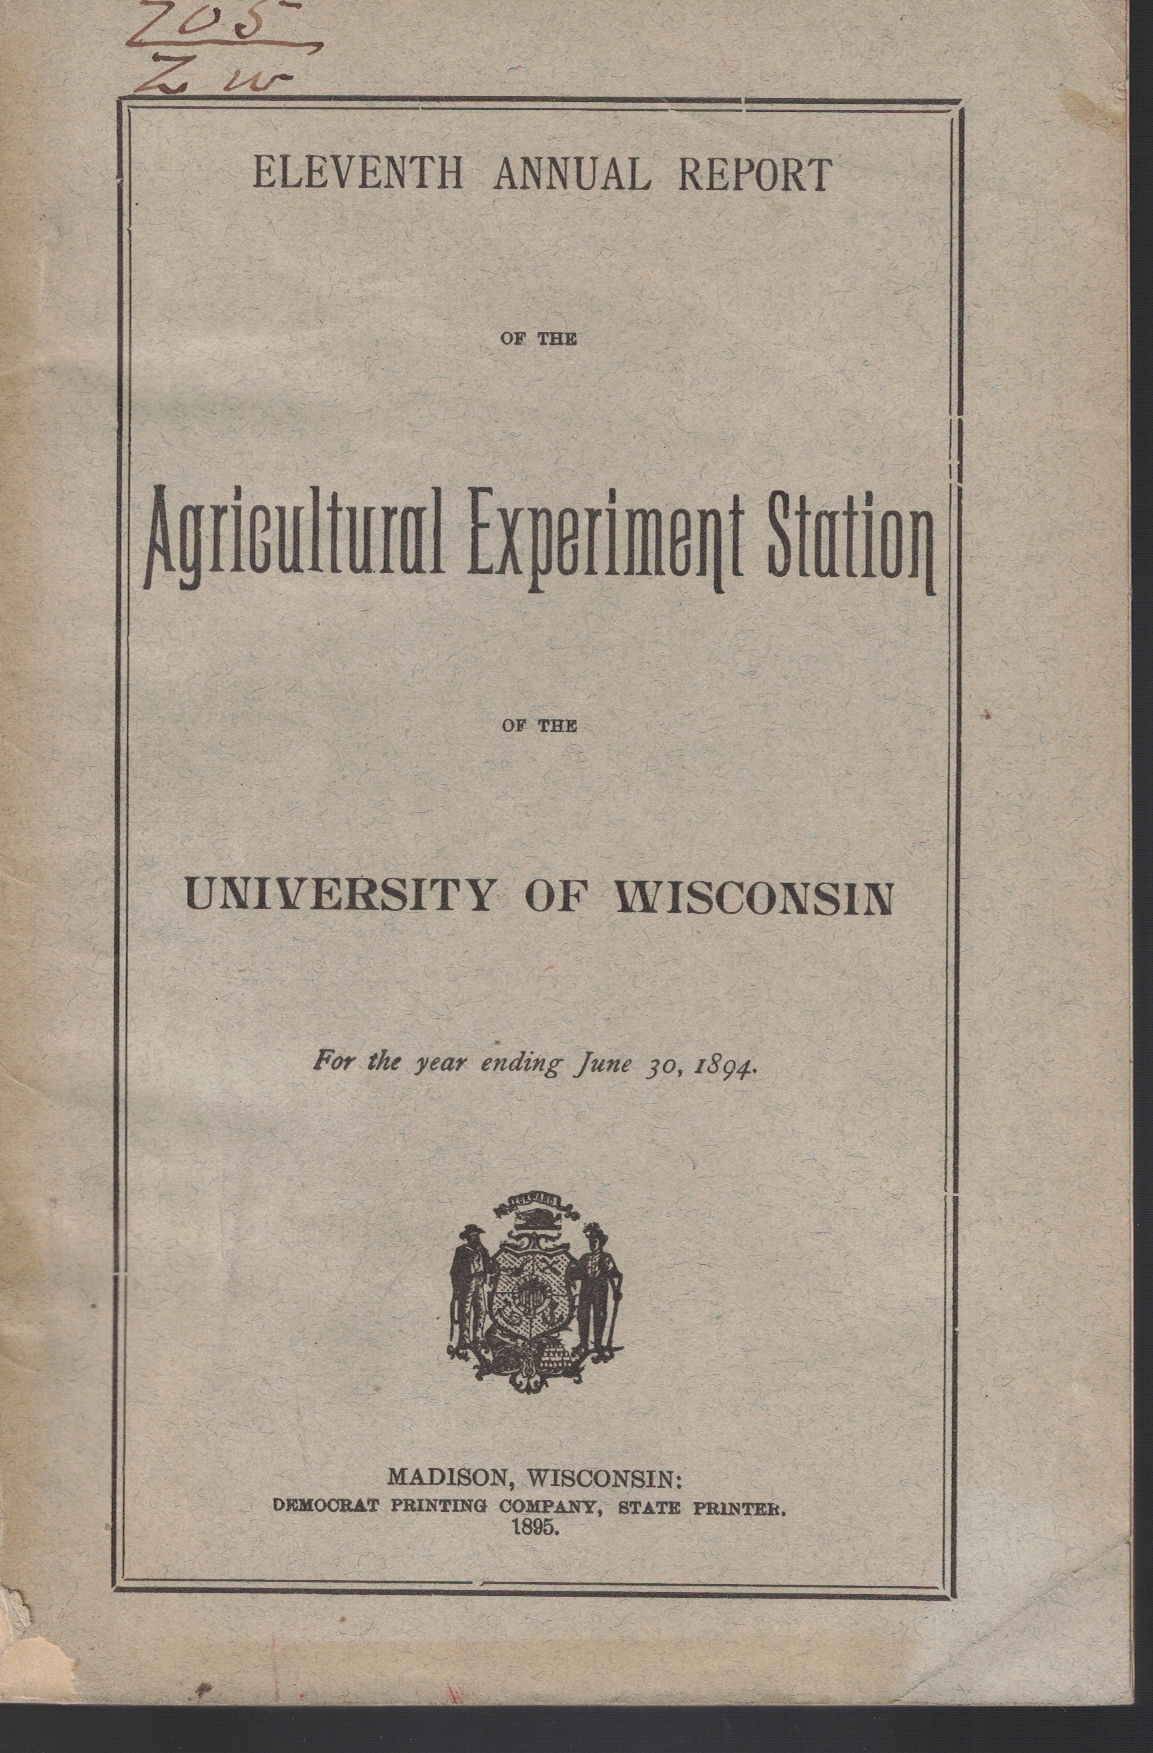 Image for Eleventh Annual Report of the Agricultural Experiment Station of the University of Wisconsin, For the Year Ending June 30, 1894